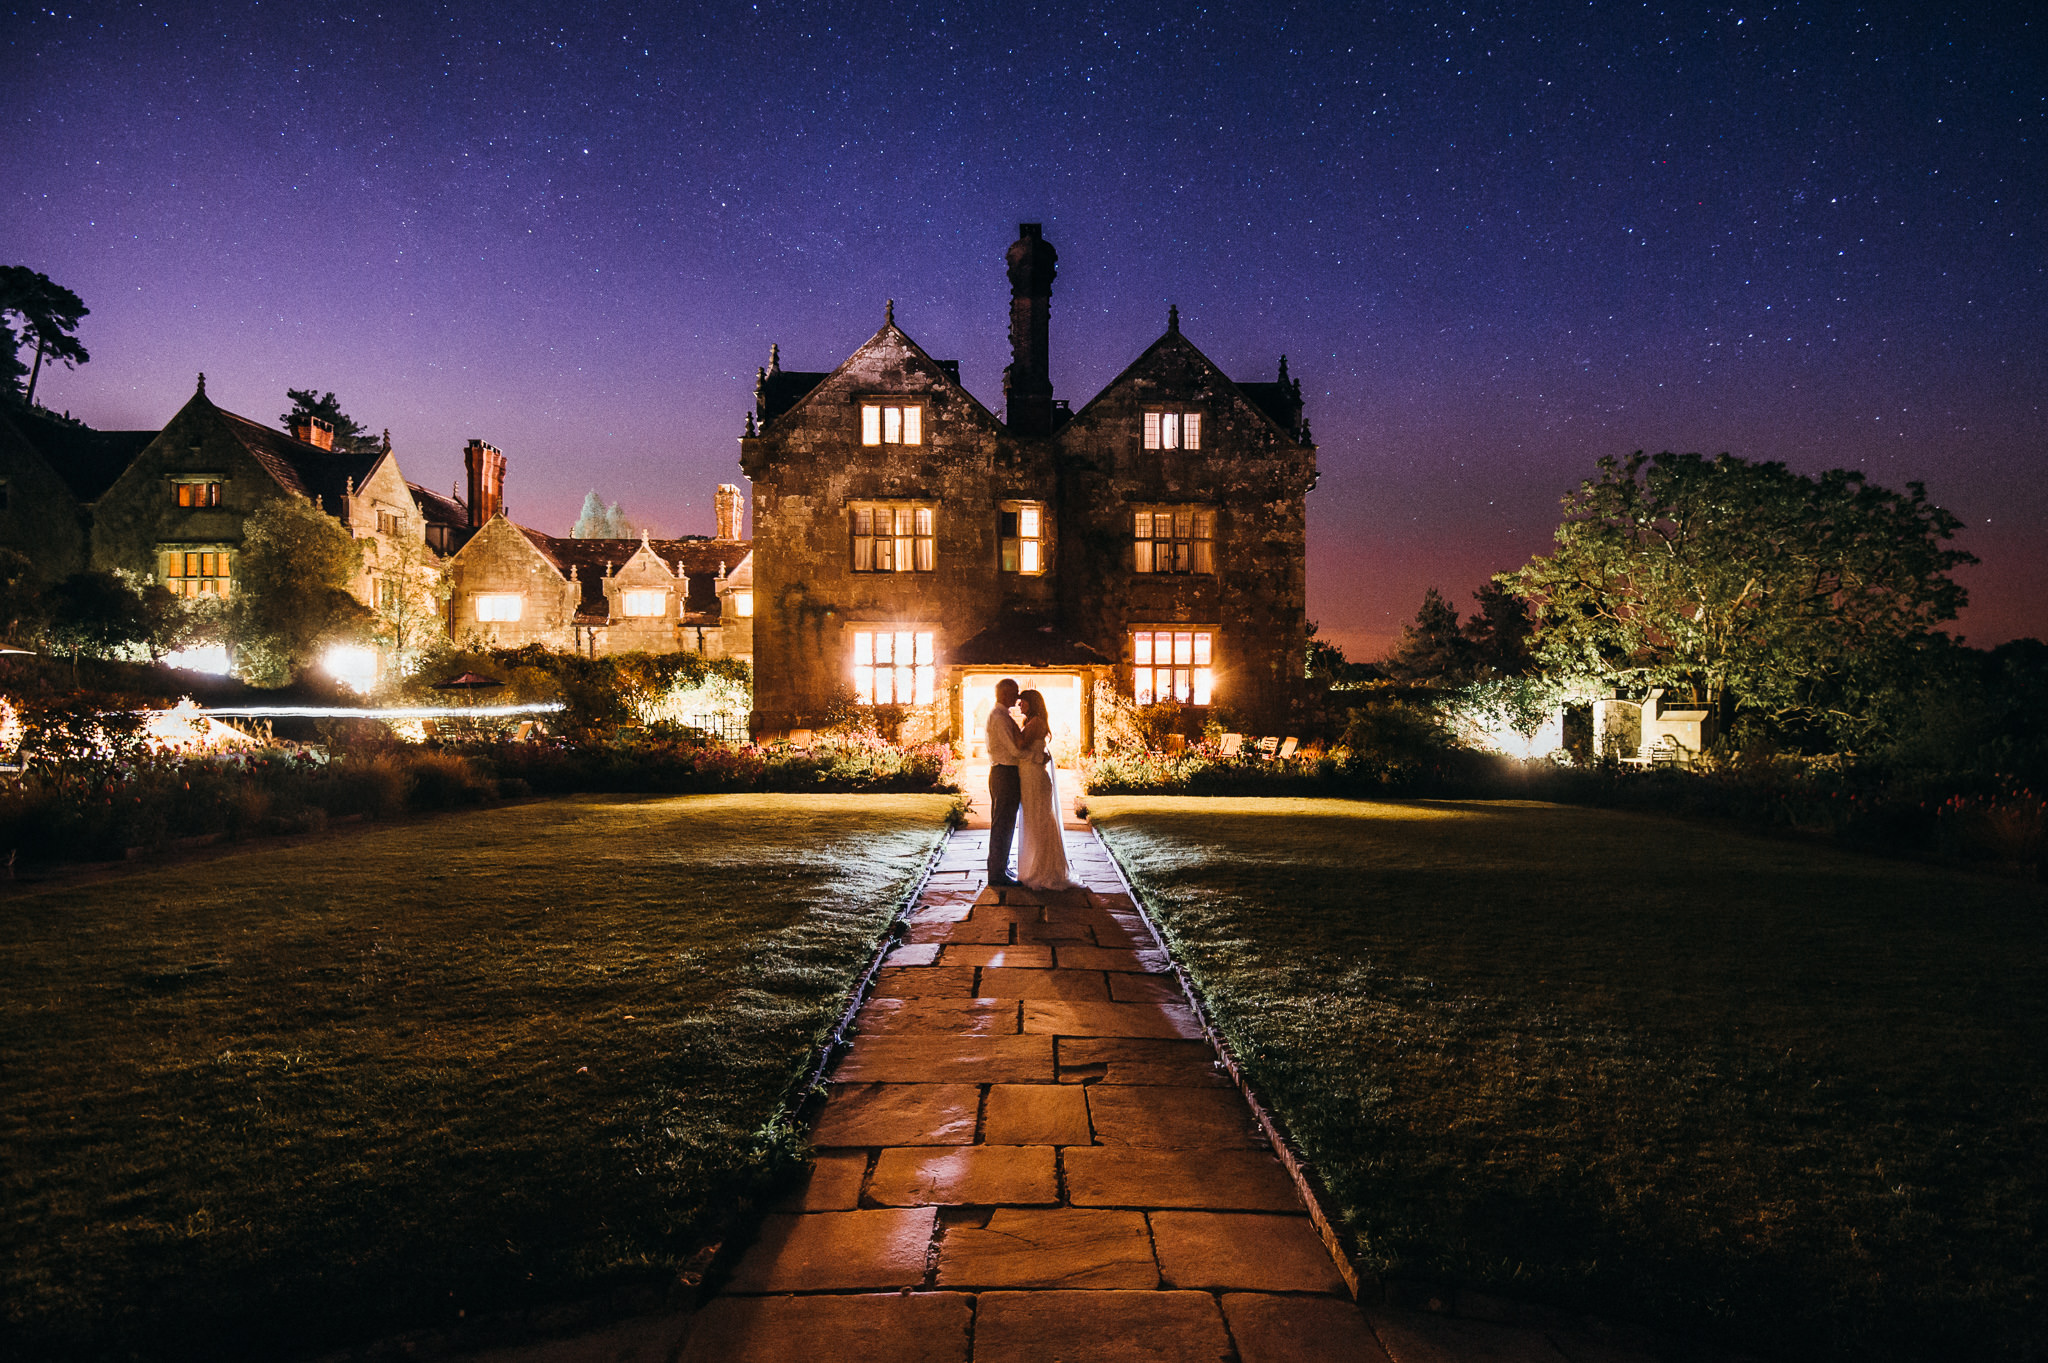 Gravetye Manor at night